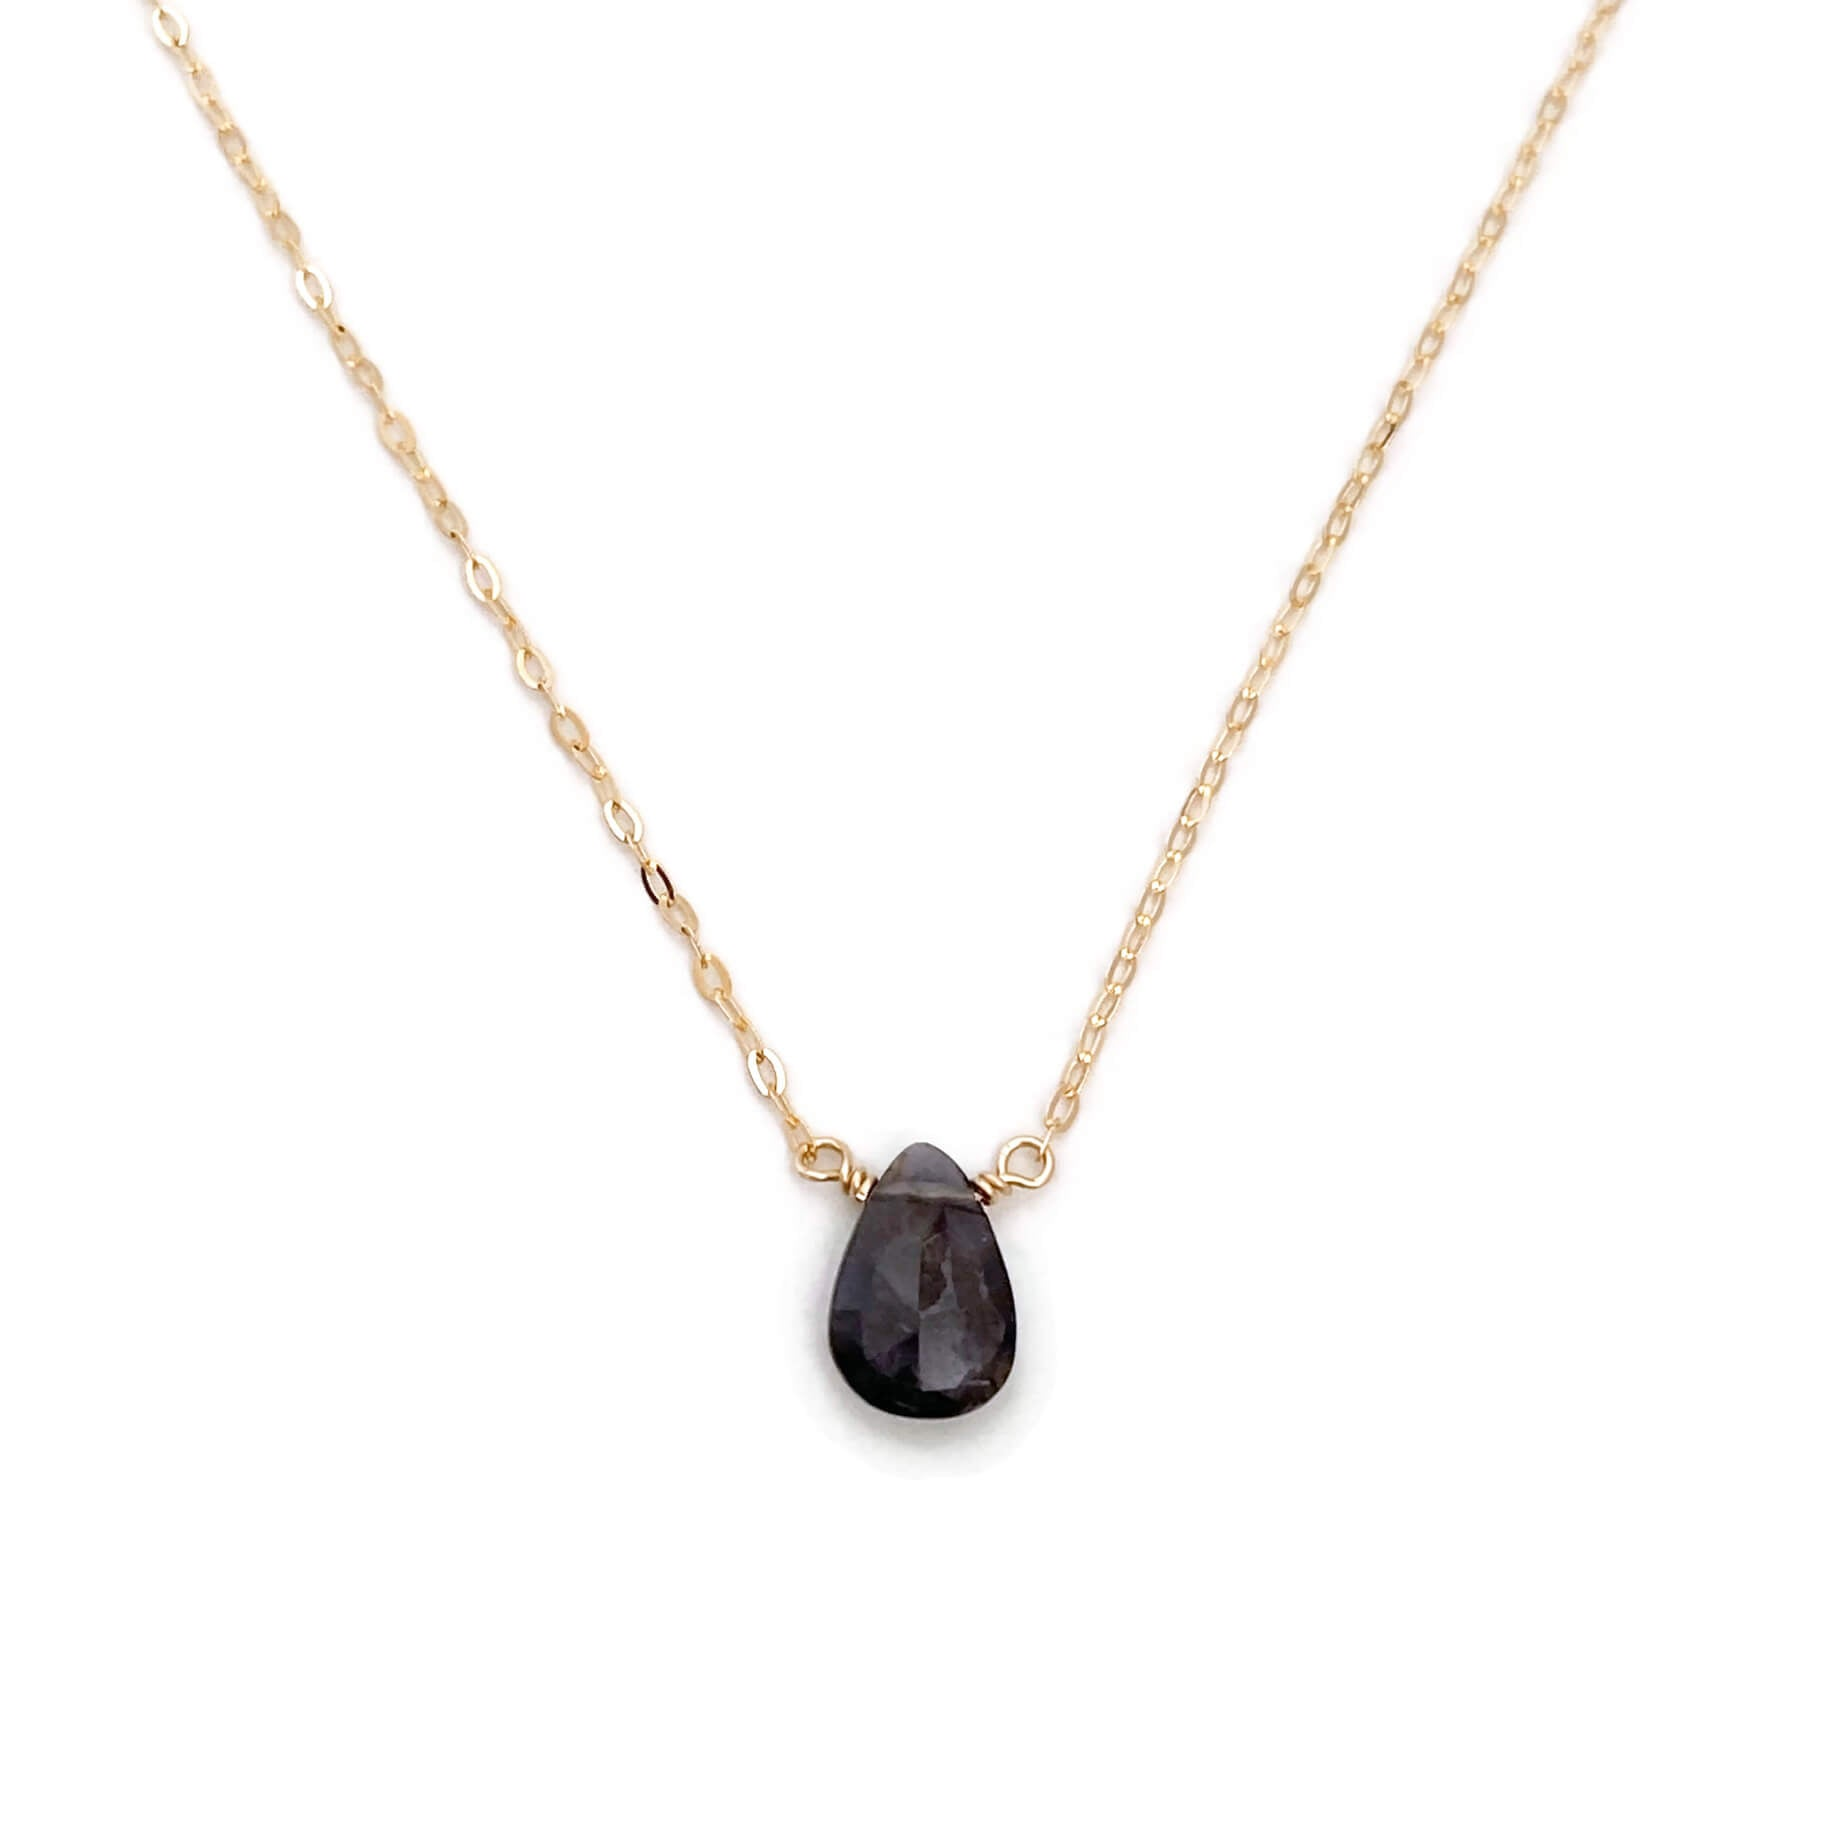 The iolite necklace is available in 14k gold, gold fill or sterling silver. This dainty purple necklace will help build strength to detoxify and help overcome bad habits.